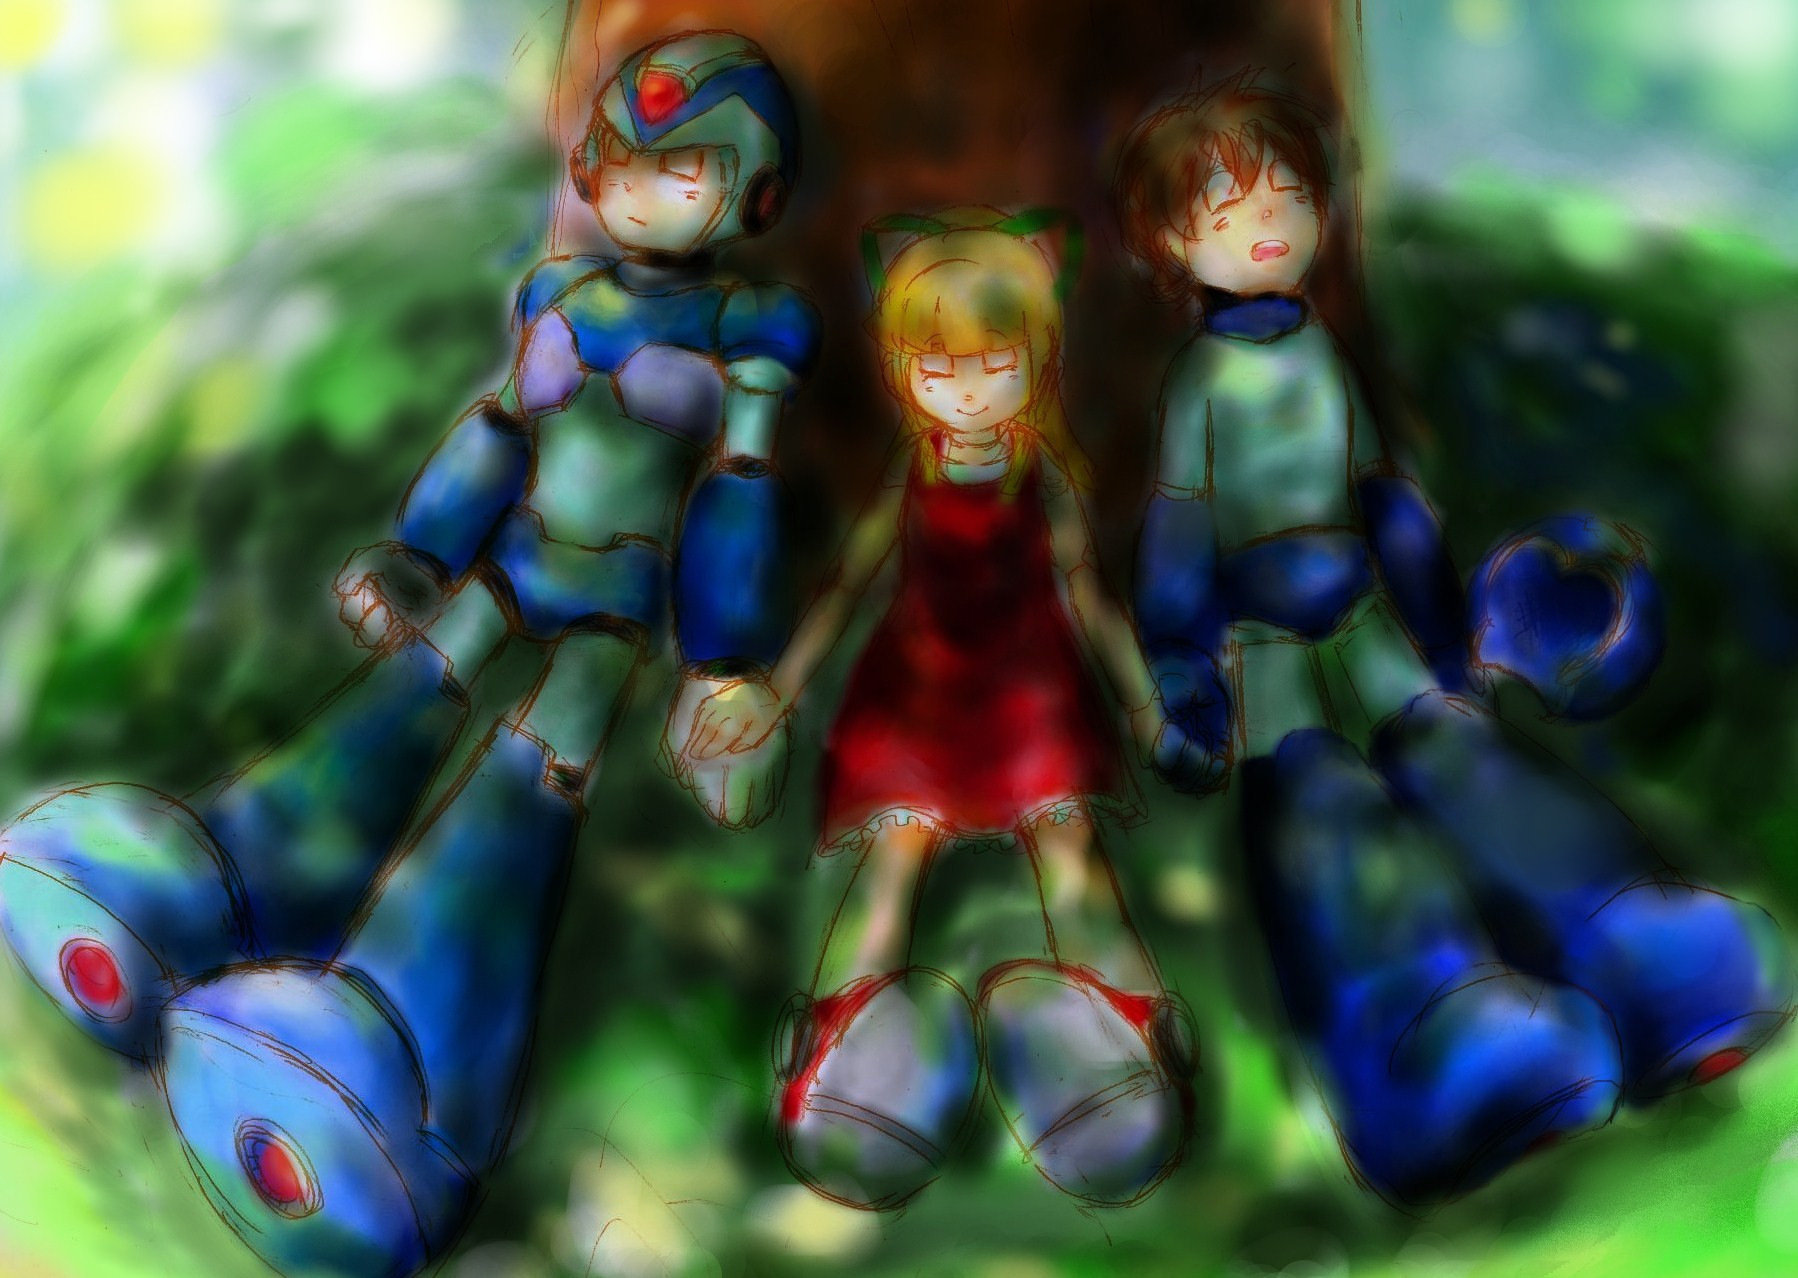 Megaman Wallpaper and Background | 1798x1278 | ID:276484